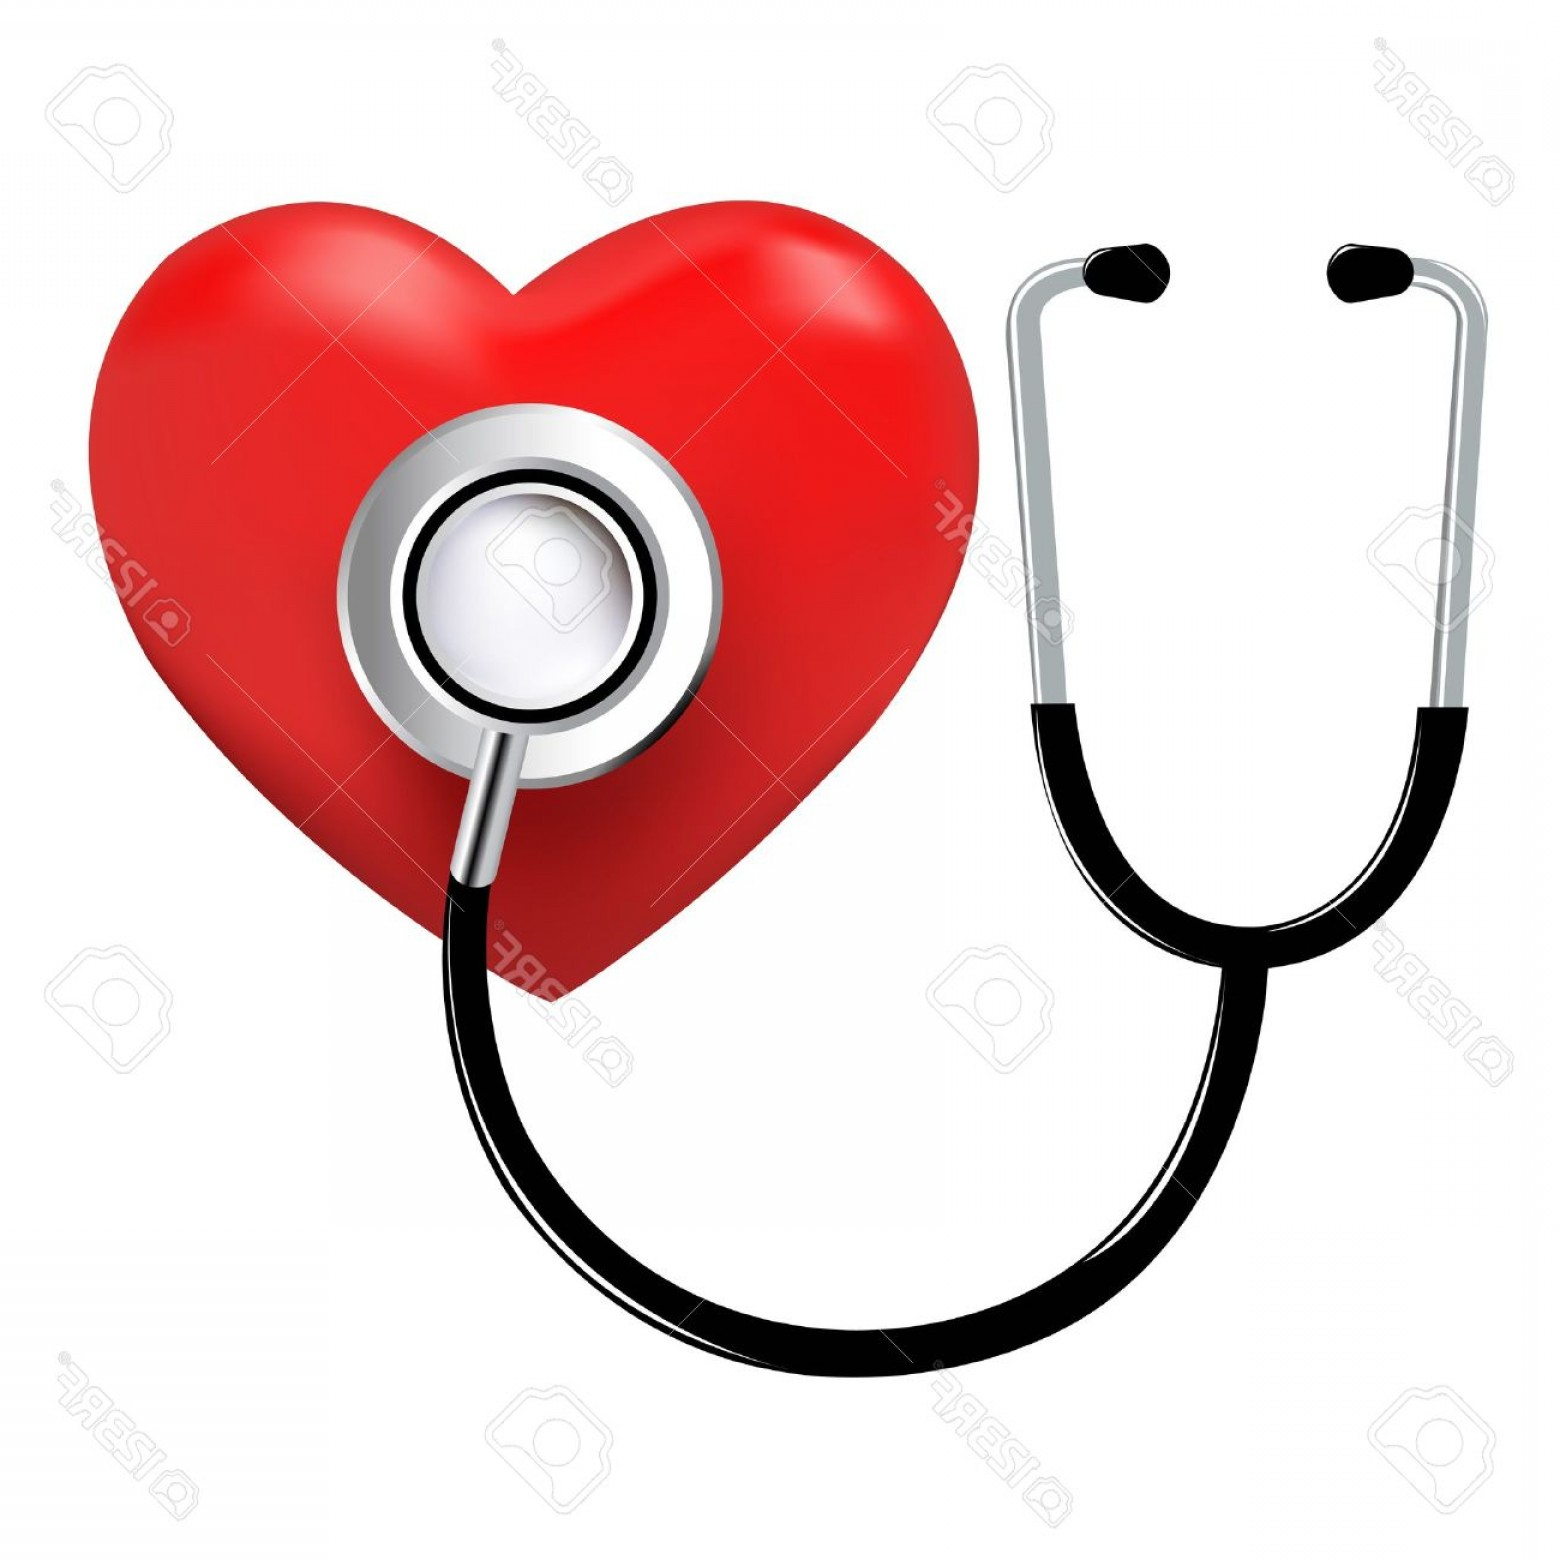 Stethoscope With Heart Vector Art: Photostethoscope And Heart Isolated On White Background Vector Illustration